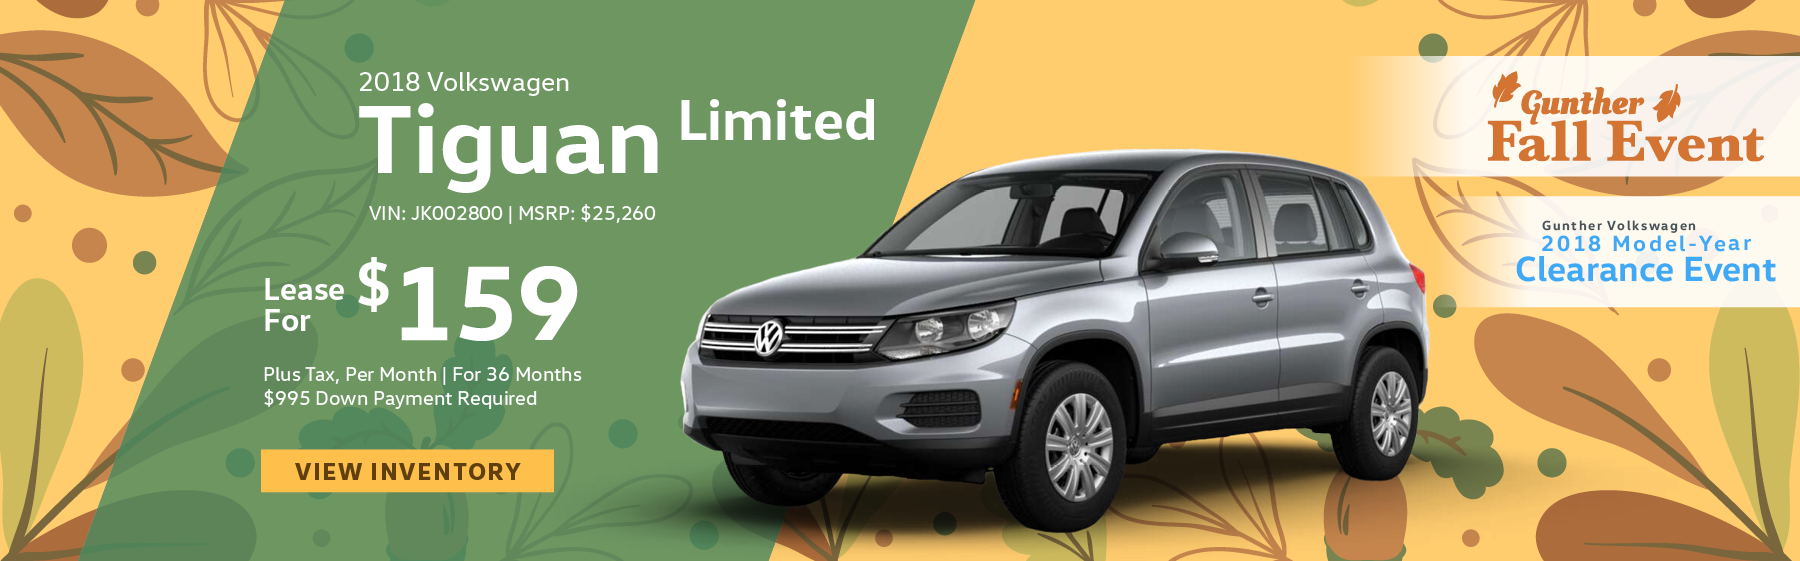 Lease the 2018 Volkswagen Tiguan Limited premium package with keyless access, leather trimmed steering wheel and shift knob, VW car-net app connect smartphone integration, for $159 per month, plus tax for 36 months. Click here to view inventory.